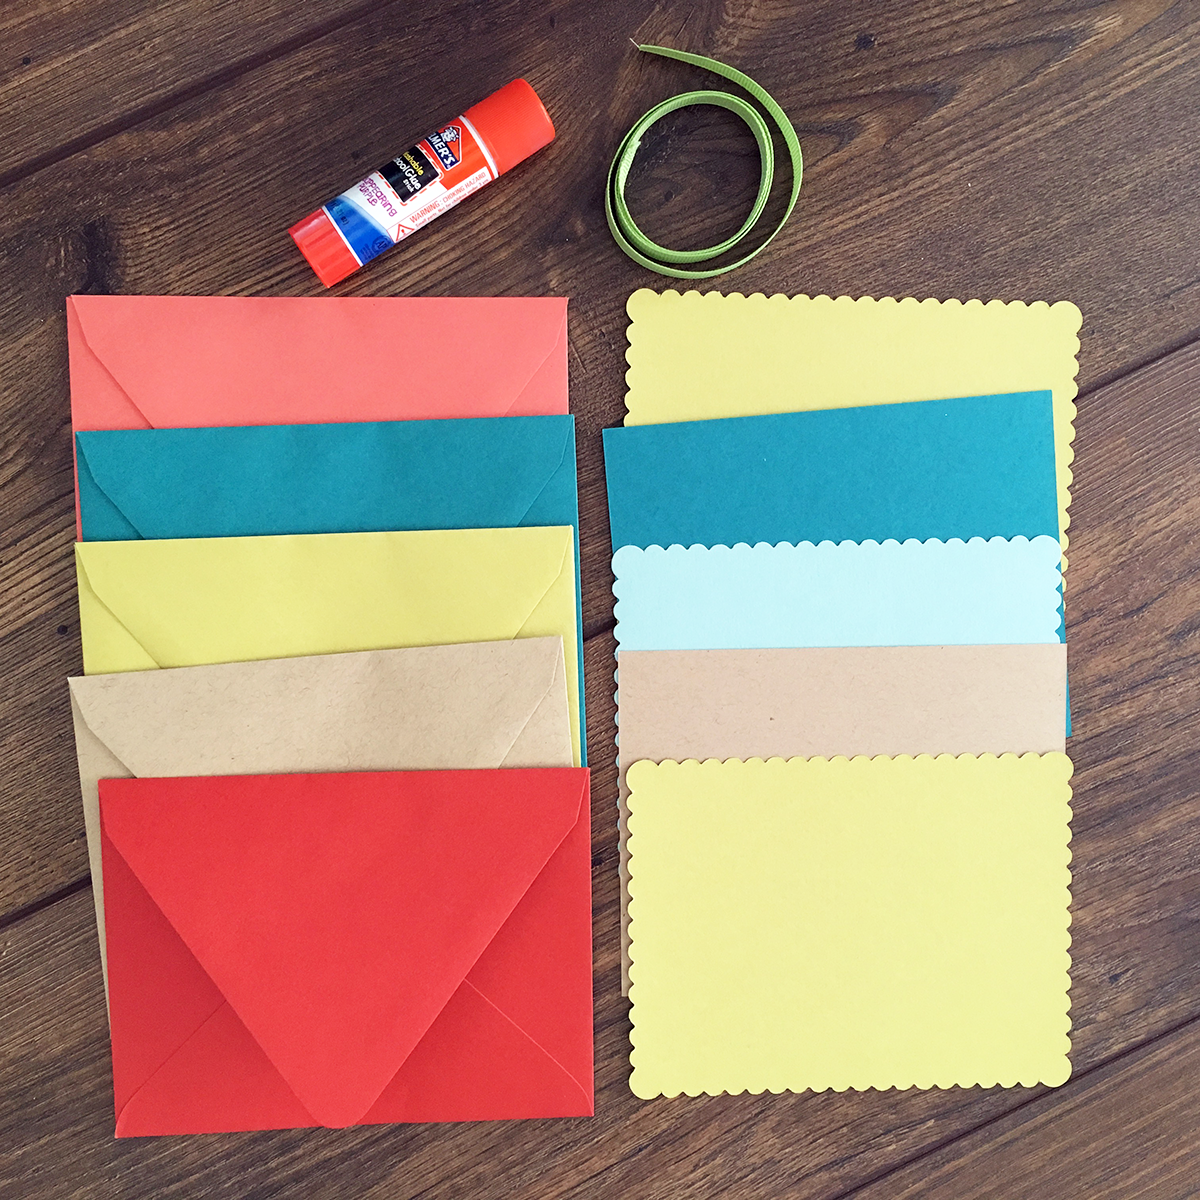 Accordion Envelope Book Materials